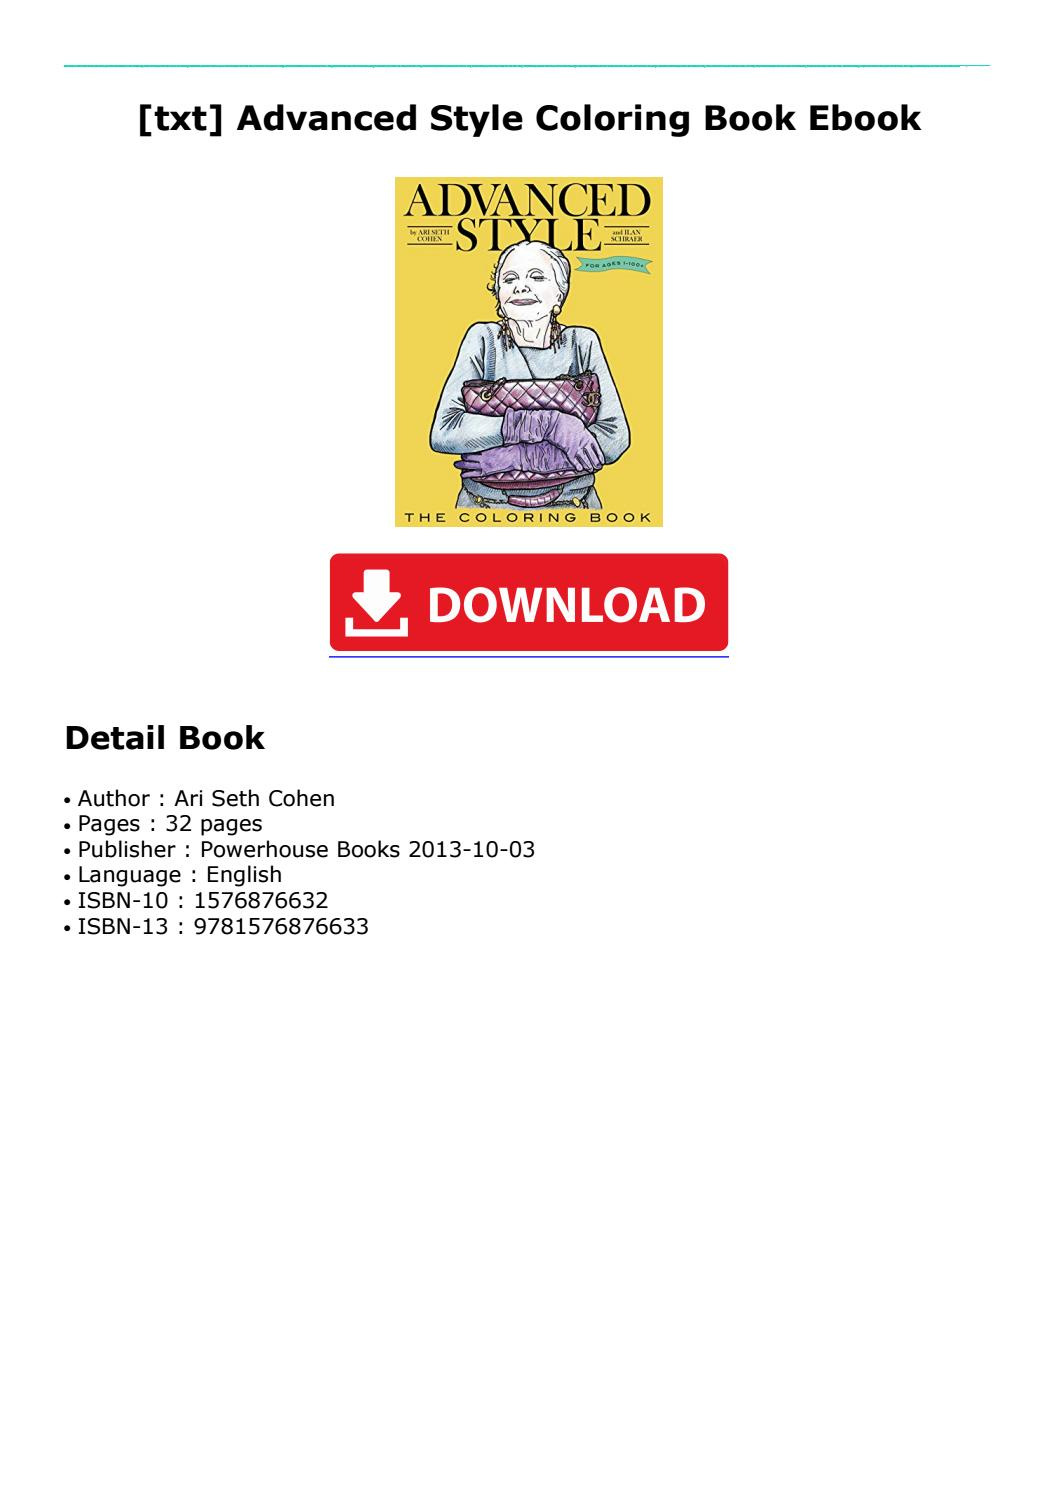 Txt] Advanced Style Coloring Book Ebook By Bkvxtdxzq